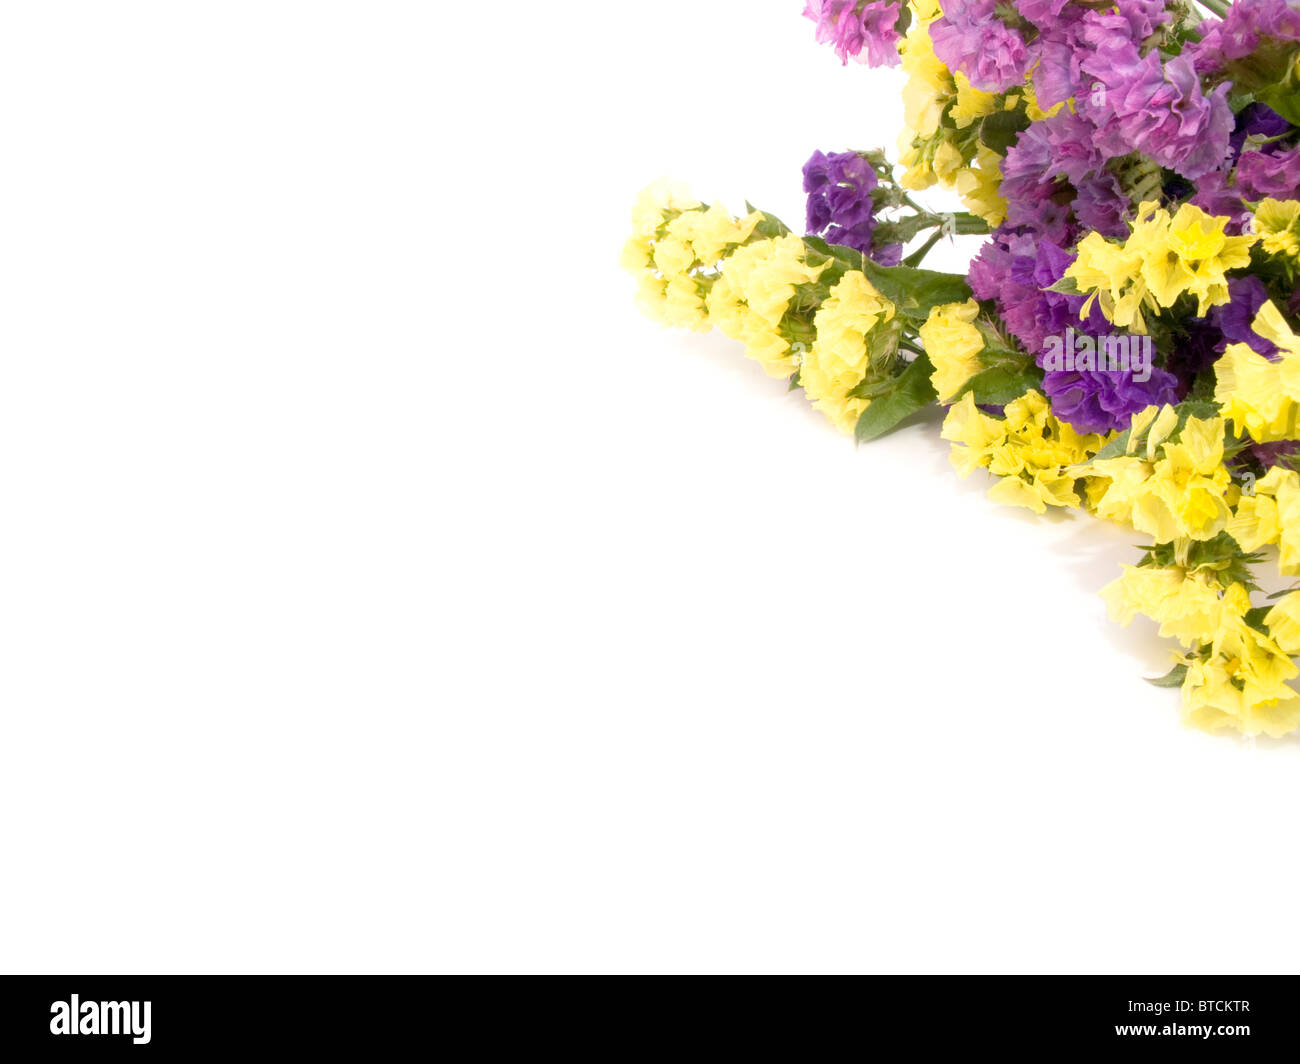 Statice flowers border - white empty space - Stock Image